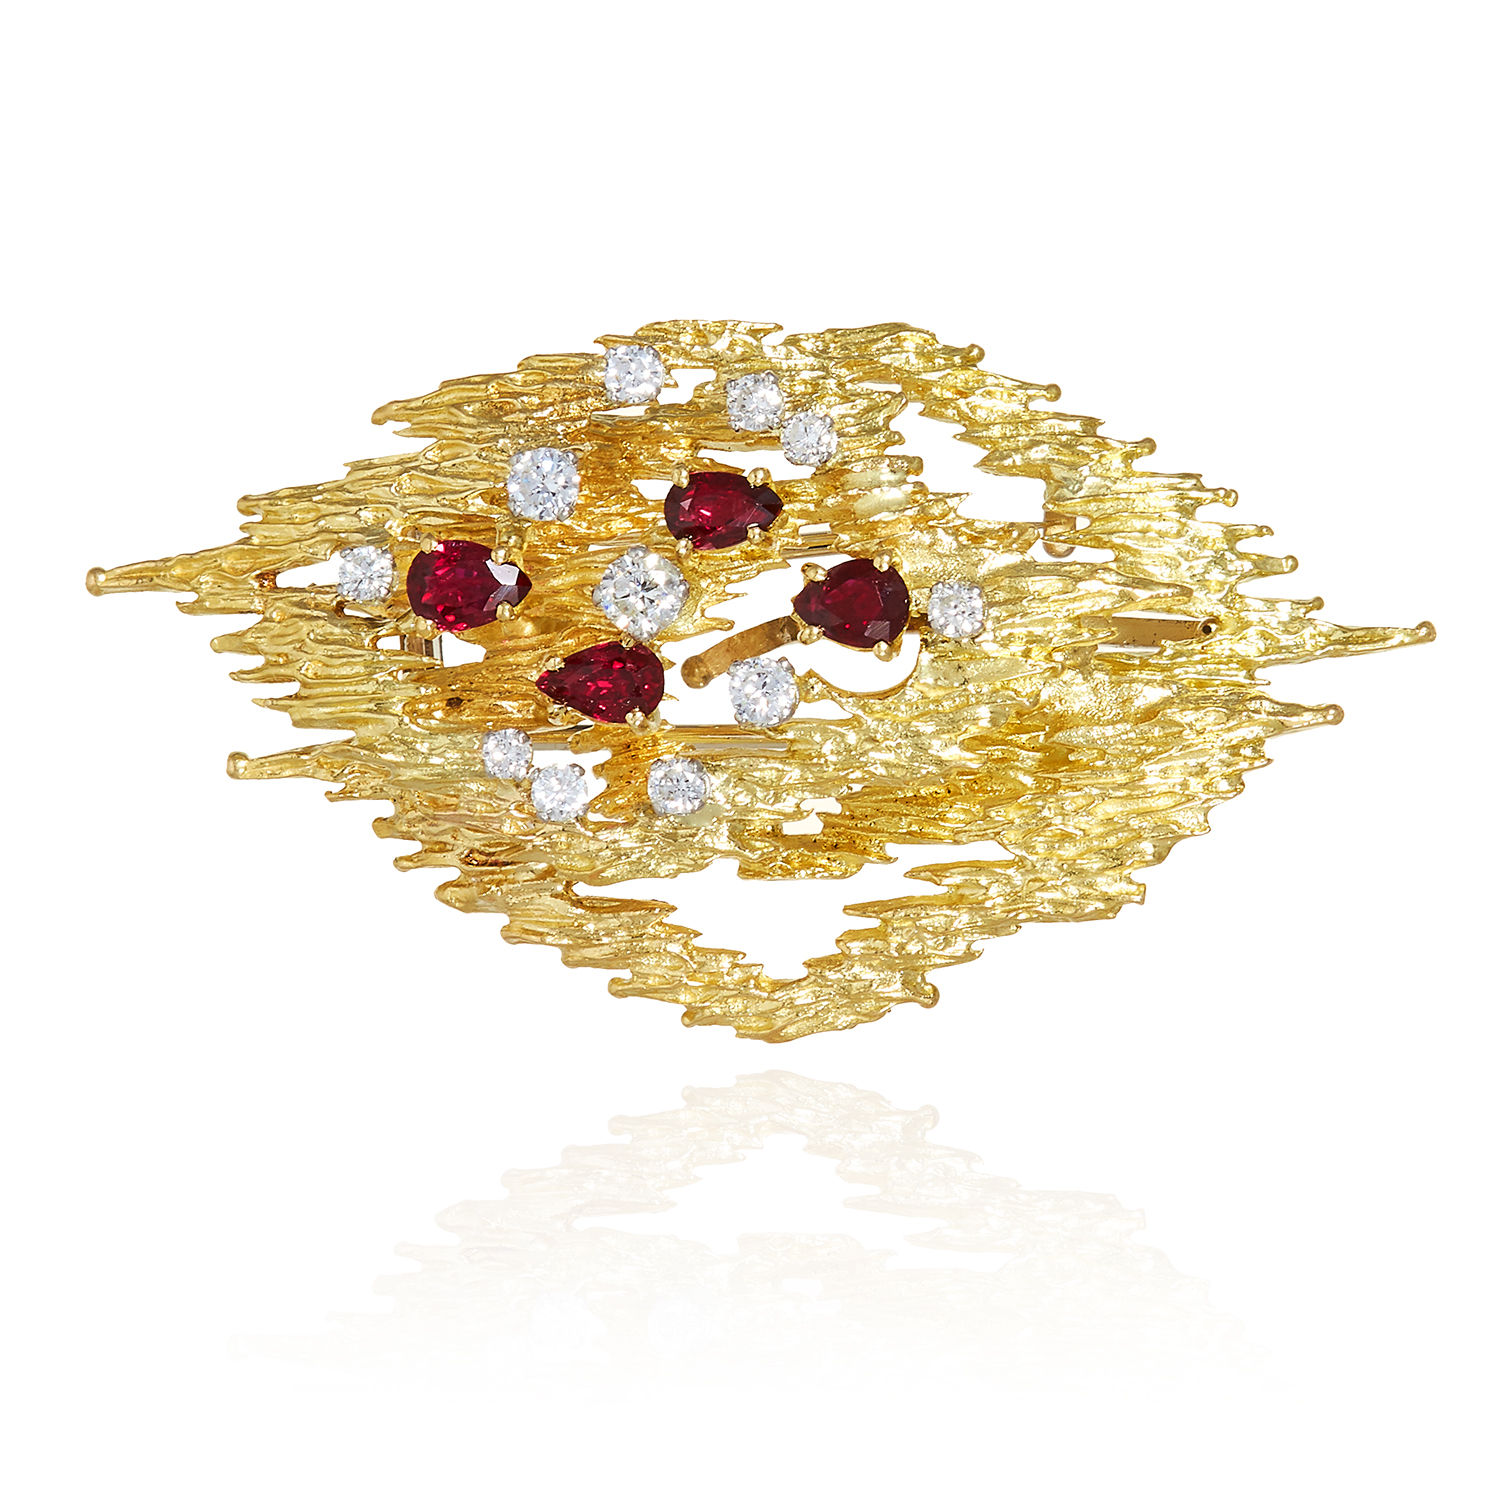 Los 57 - A RUBY AND DIAMOND BROOCH / PENDANT, CIRCA 1976 in 18ct yellow gold, in abstract design, jewelled